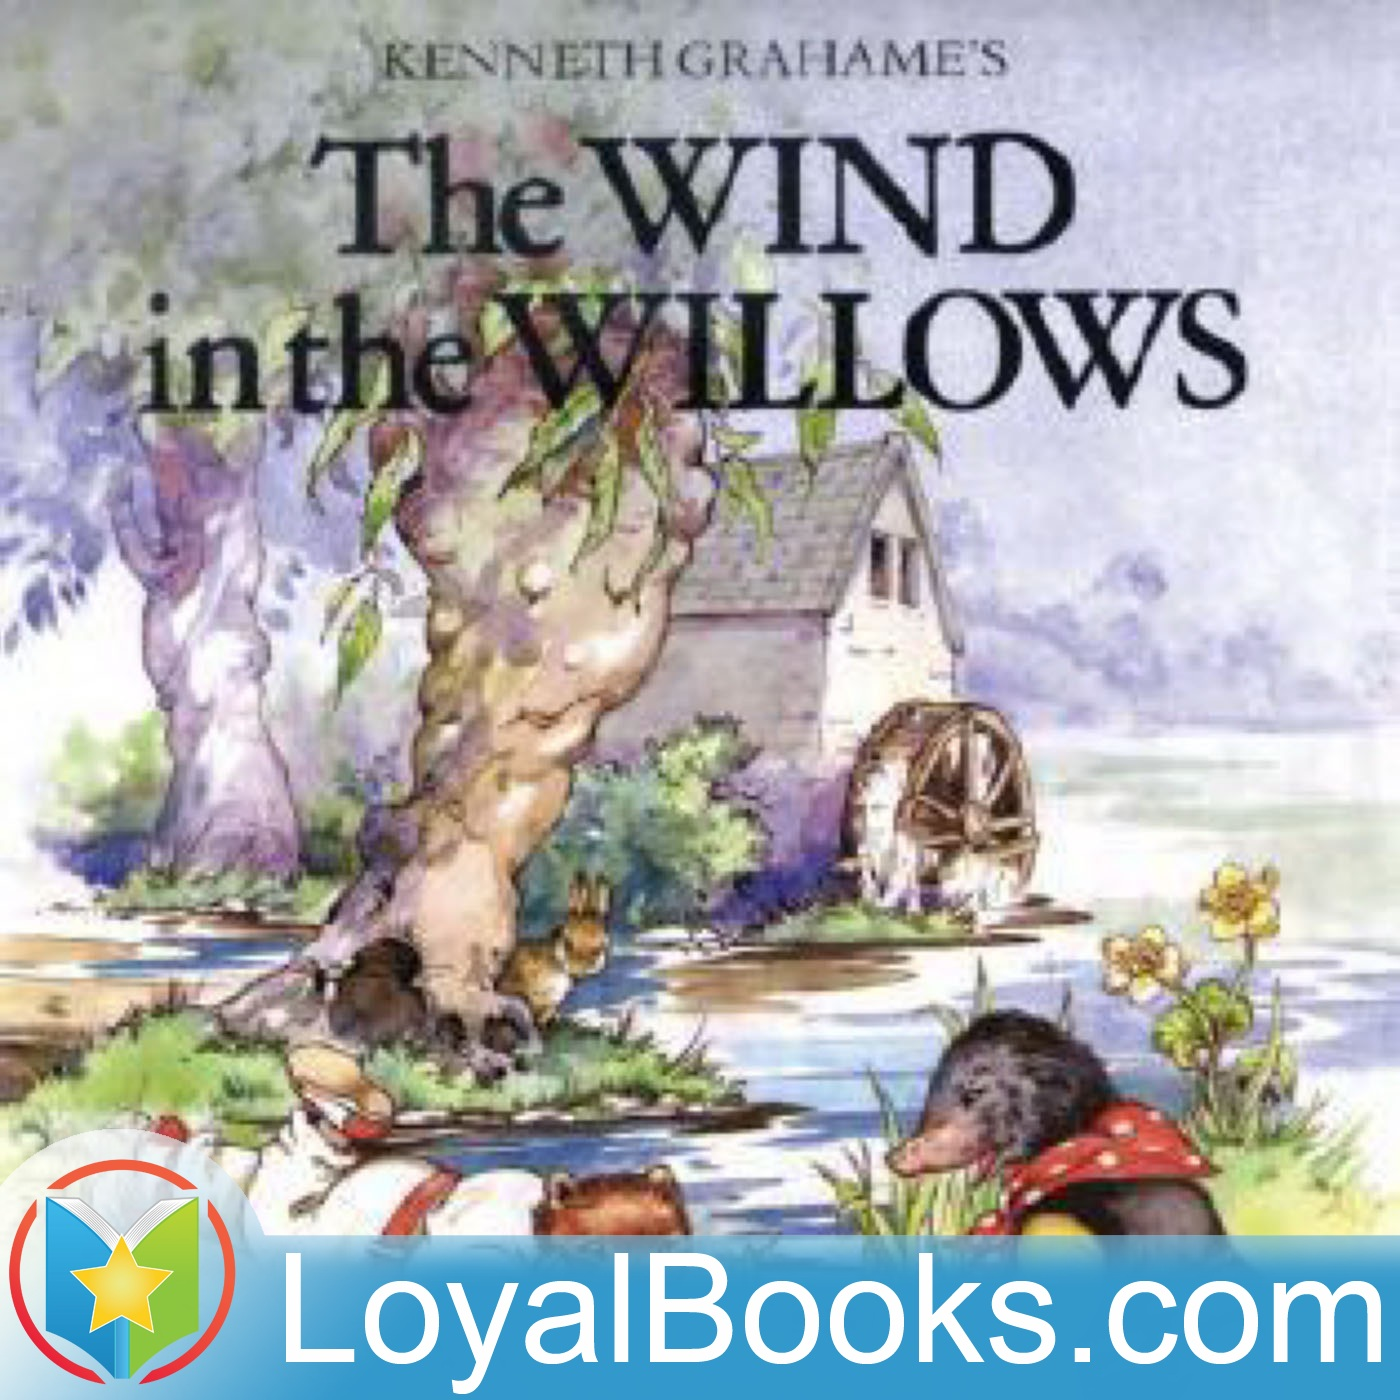 <![CDATA[The Wind in the Willows by Kenneth Grahame]]>